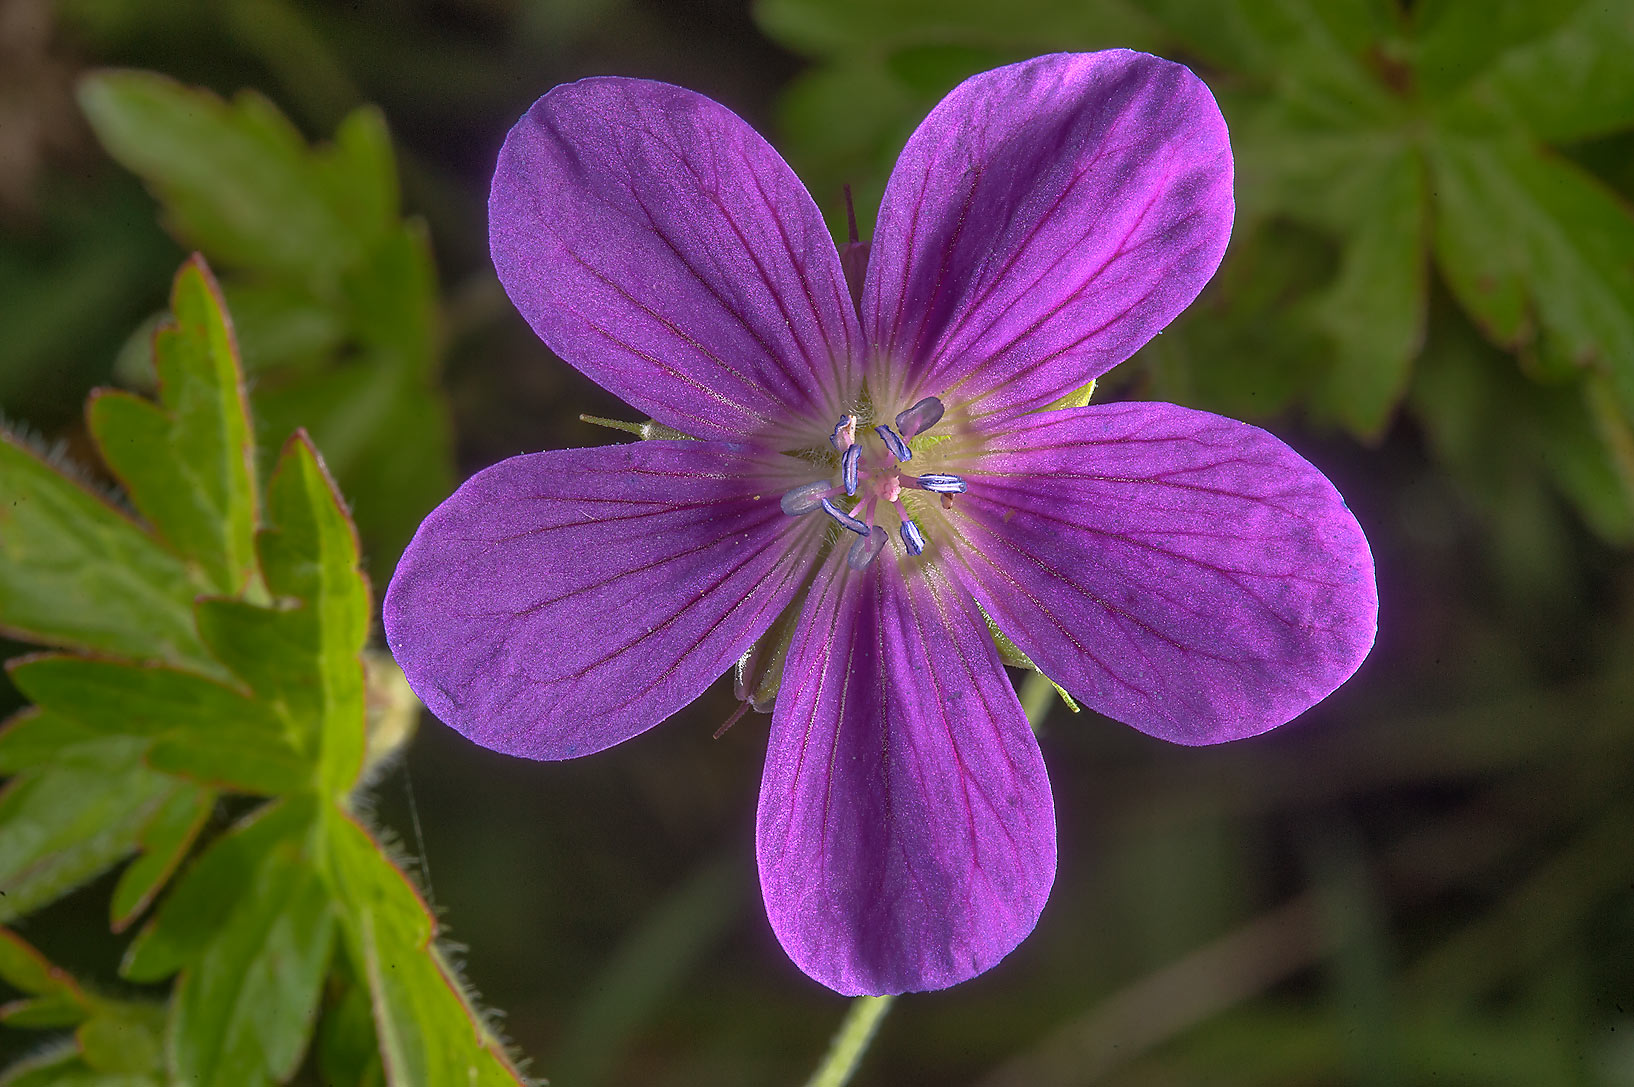 Wood cranesbill (Geranium sylvaticum) on a field...south from St.Petersburg, Russia